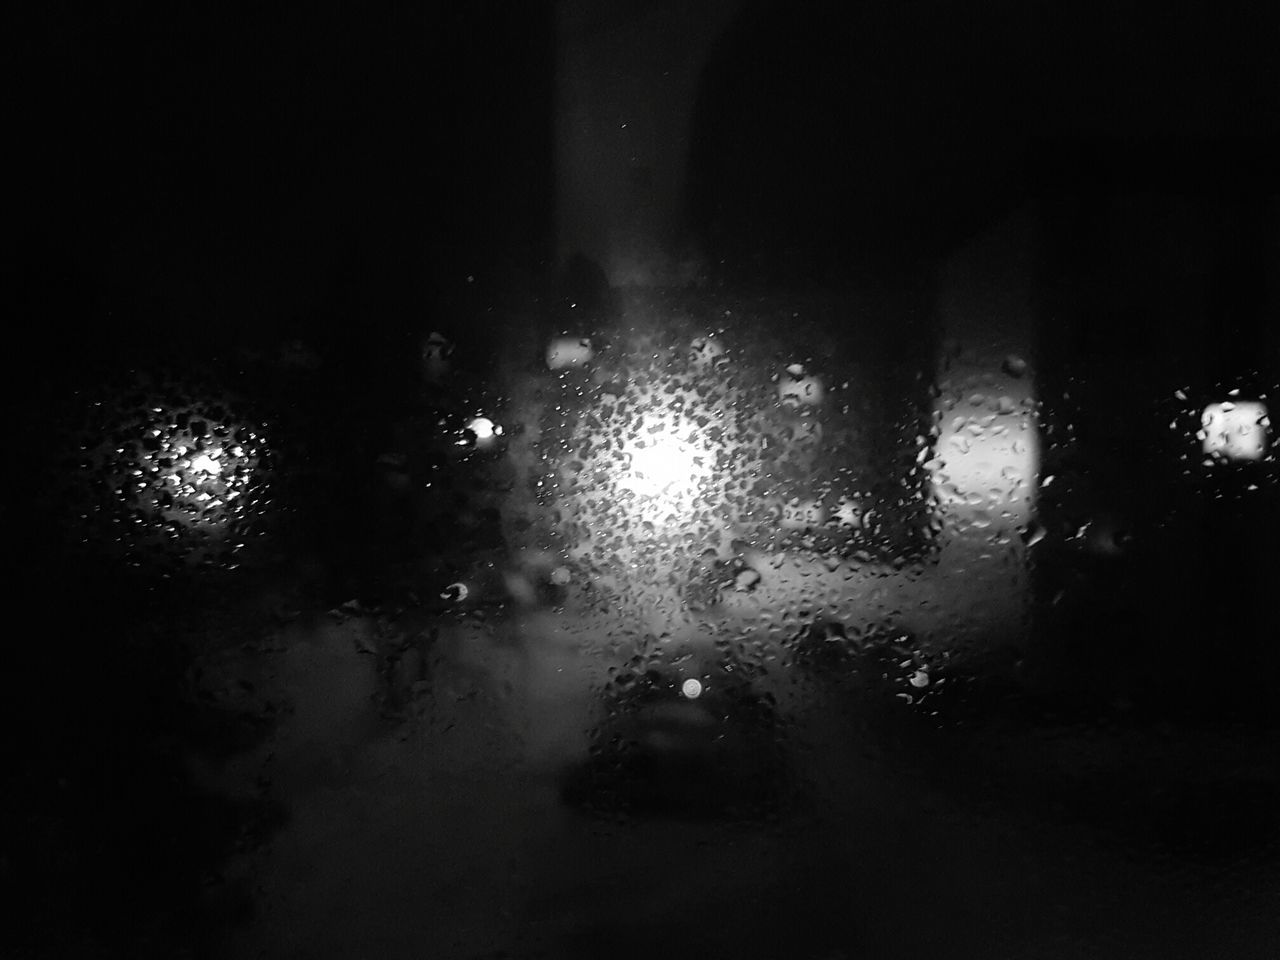 Window Sky No People Close-up Black & White Macro Nature Glamour Glowing Indoors  Bling Bling Light Winter Glass Night Reflection Shiny Lamp Car Drops Illuminated Illusion Love Luxury Fashion